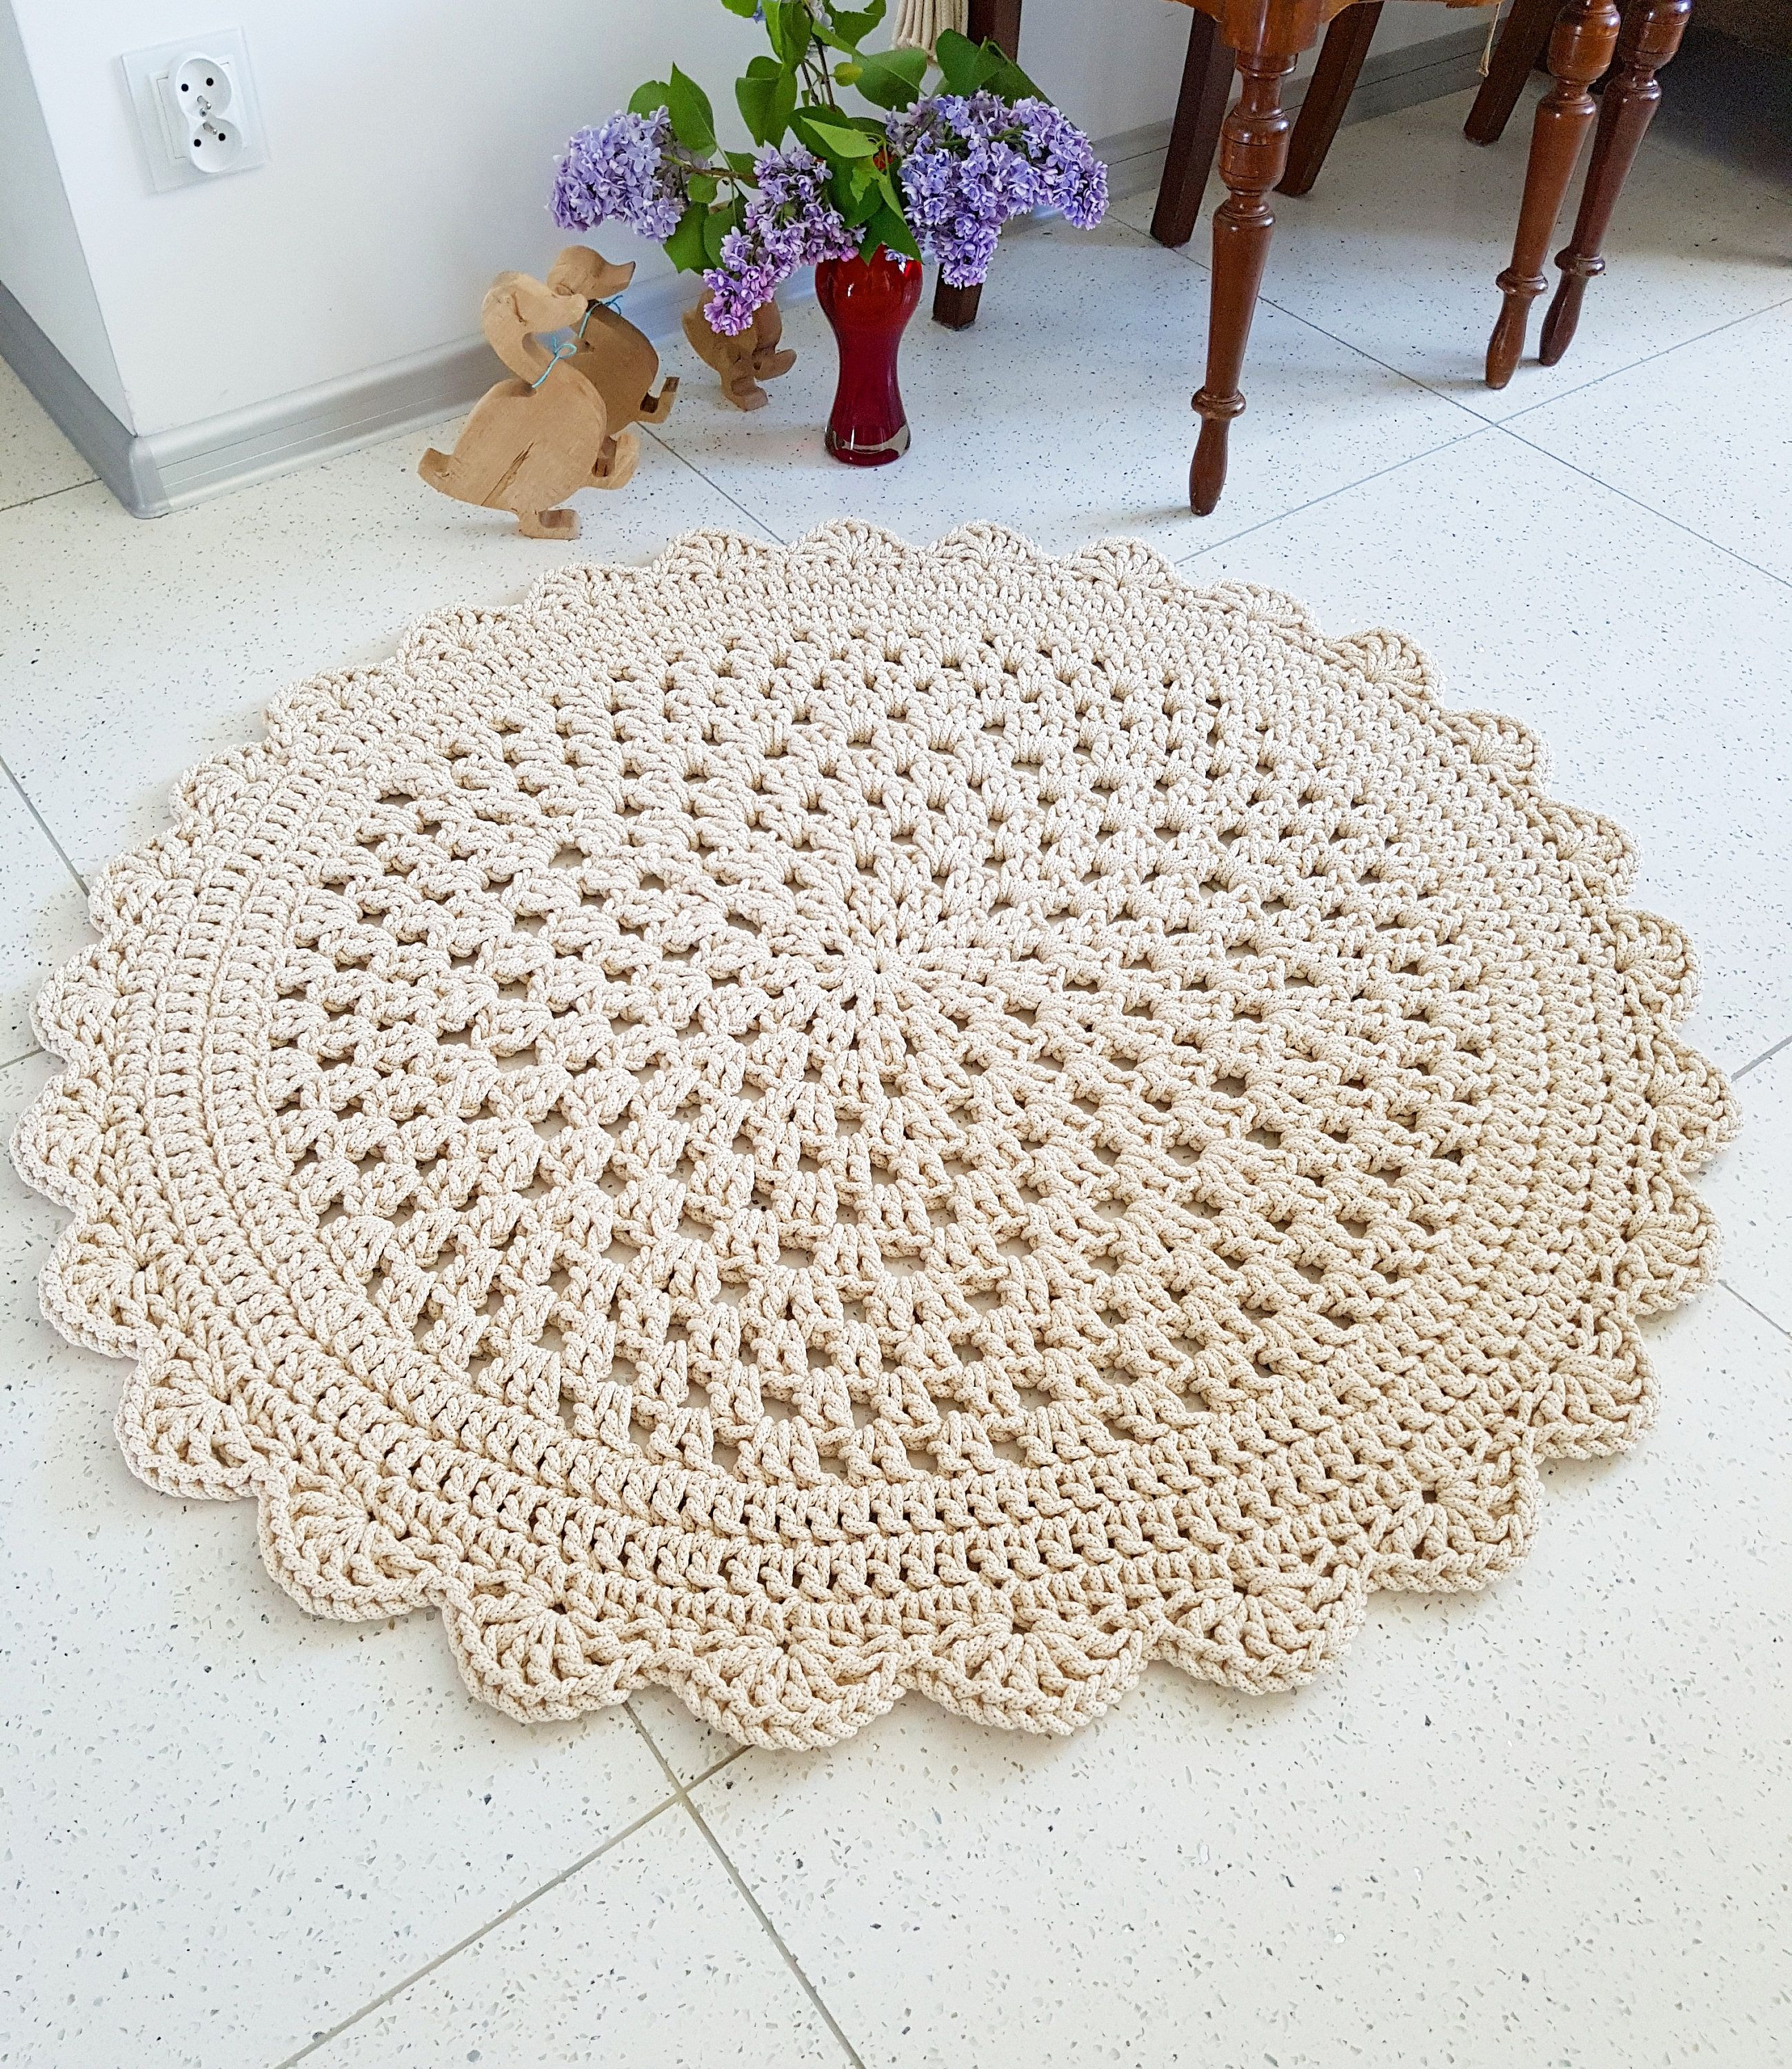 Many Colors Sizes Handmade Large Crochet Rug Washable Cotton Natural Carpet Cord Doily Modern By Madeofweaves On Etsy